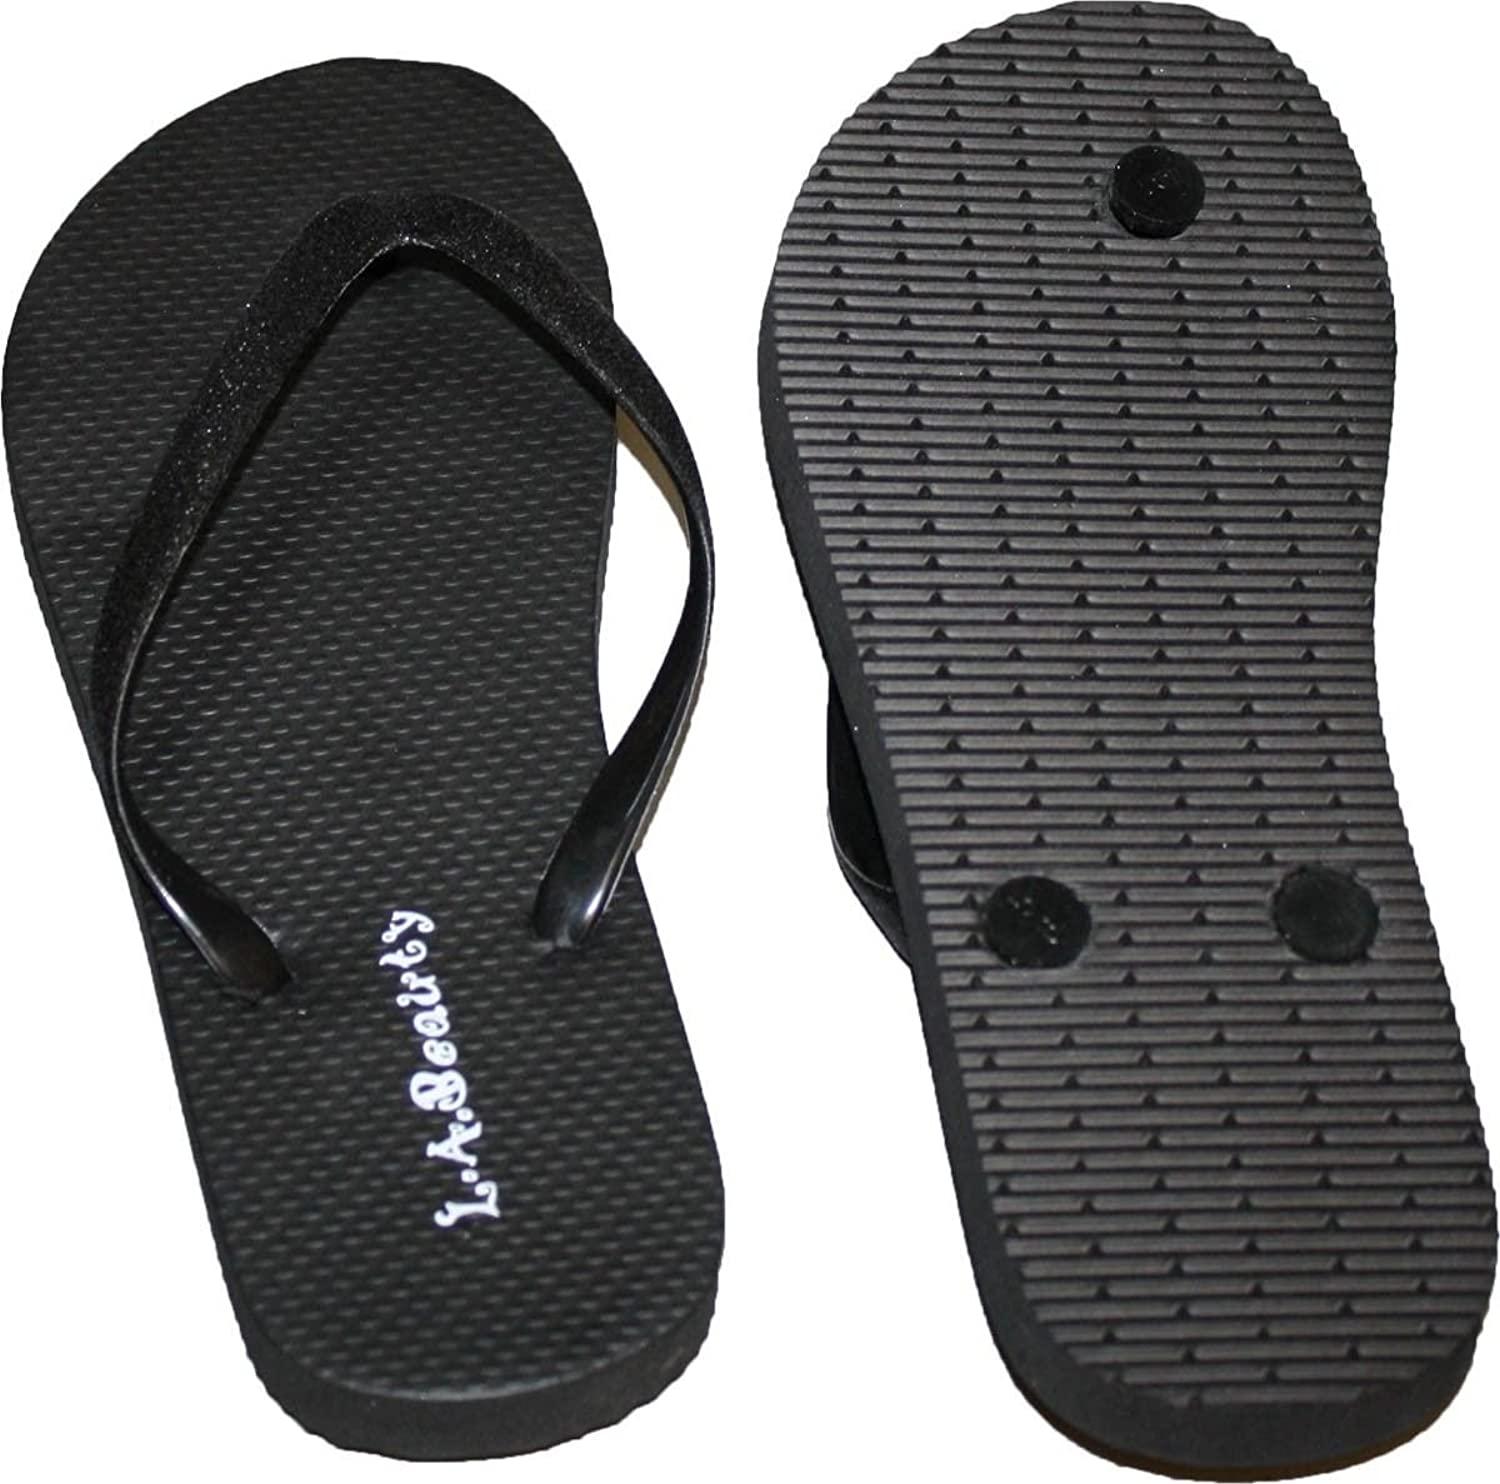 Womens Flip Flop With Glitter Straps and Comportable Footbed, Cool Looking Style